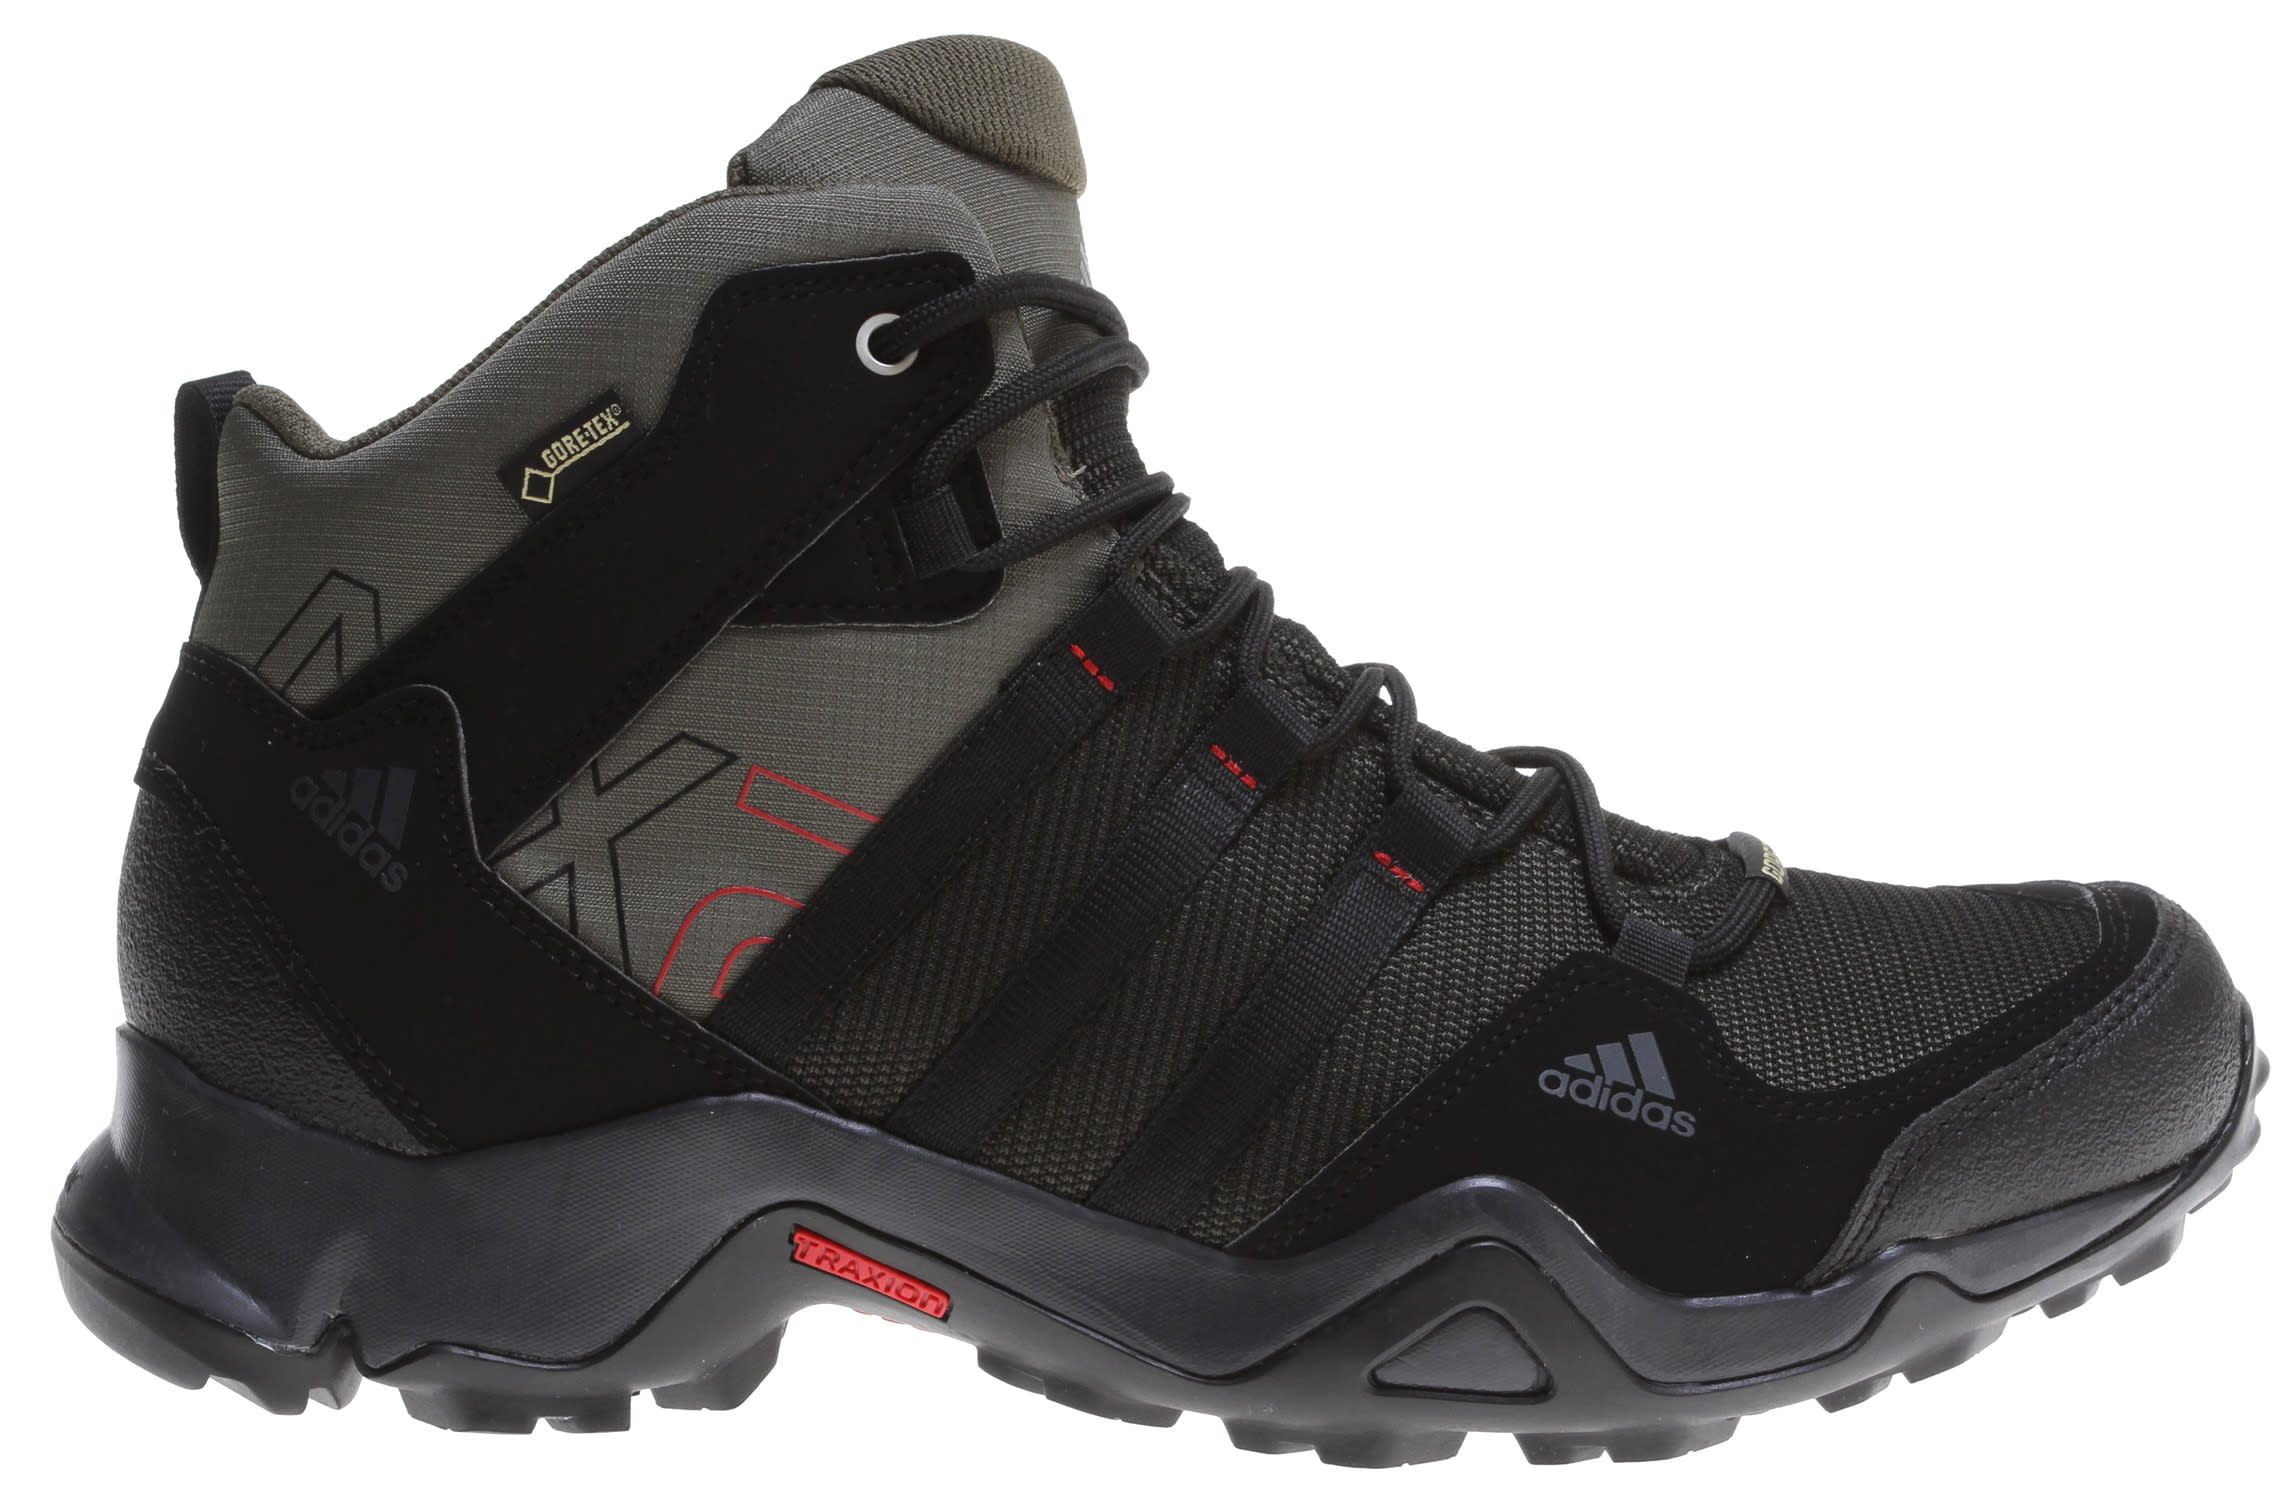 adidas ax2 mid gore tex hiking boots. Black Bedroom Furniture Sets. Home Design Ideas